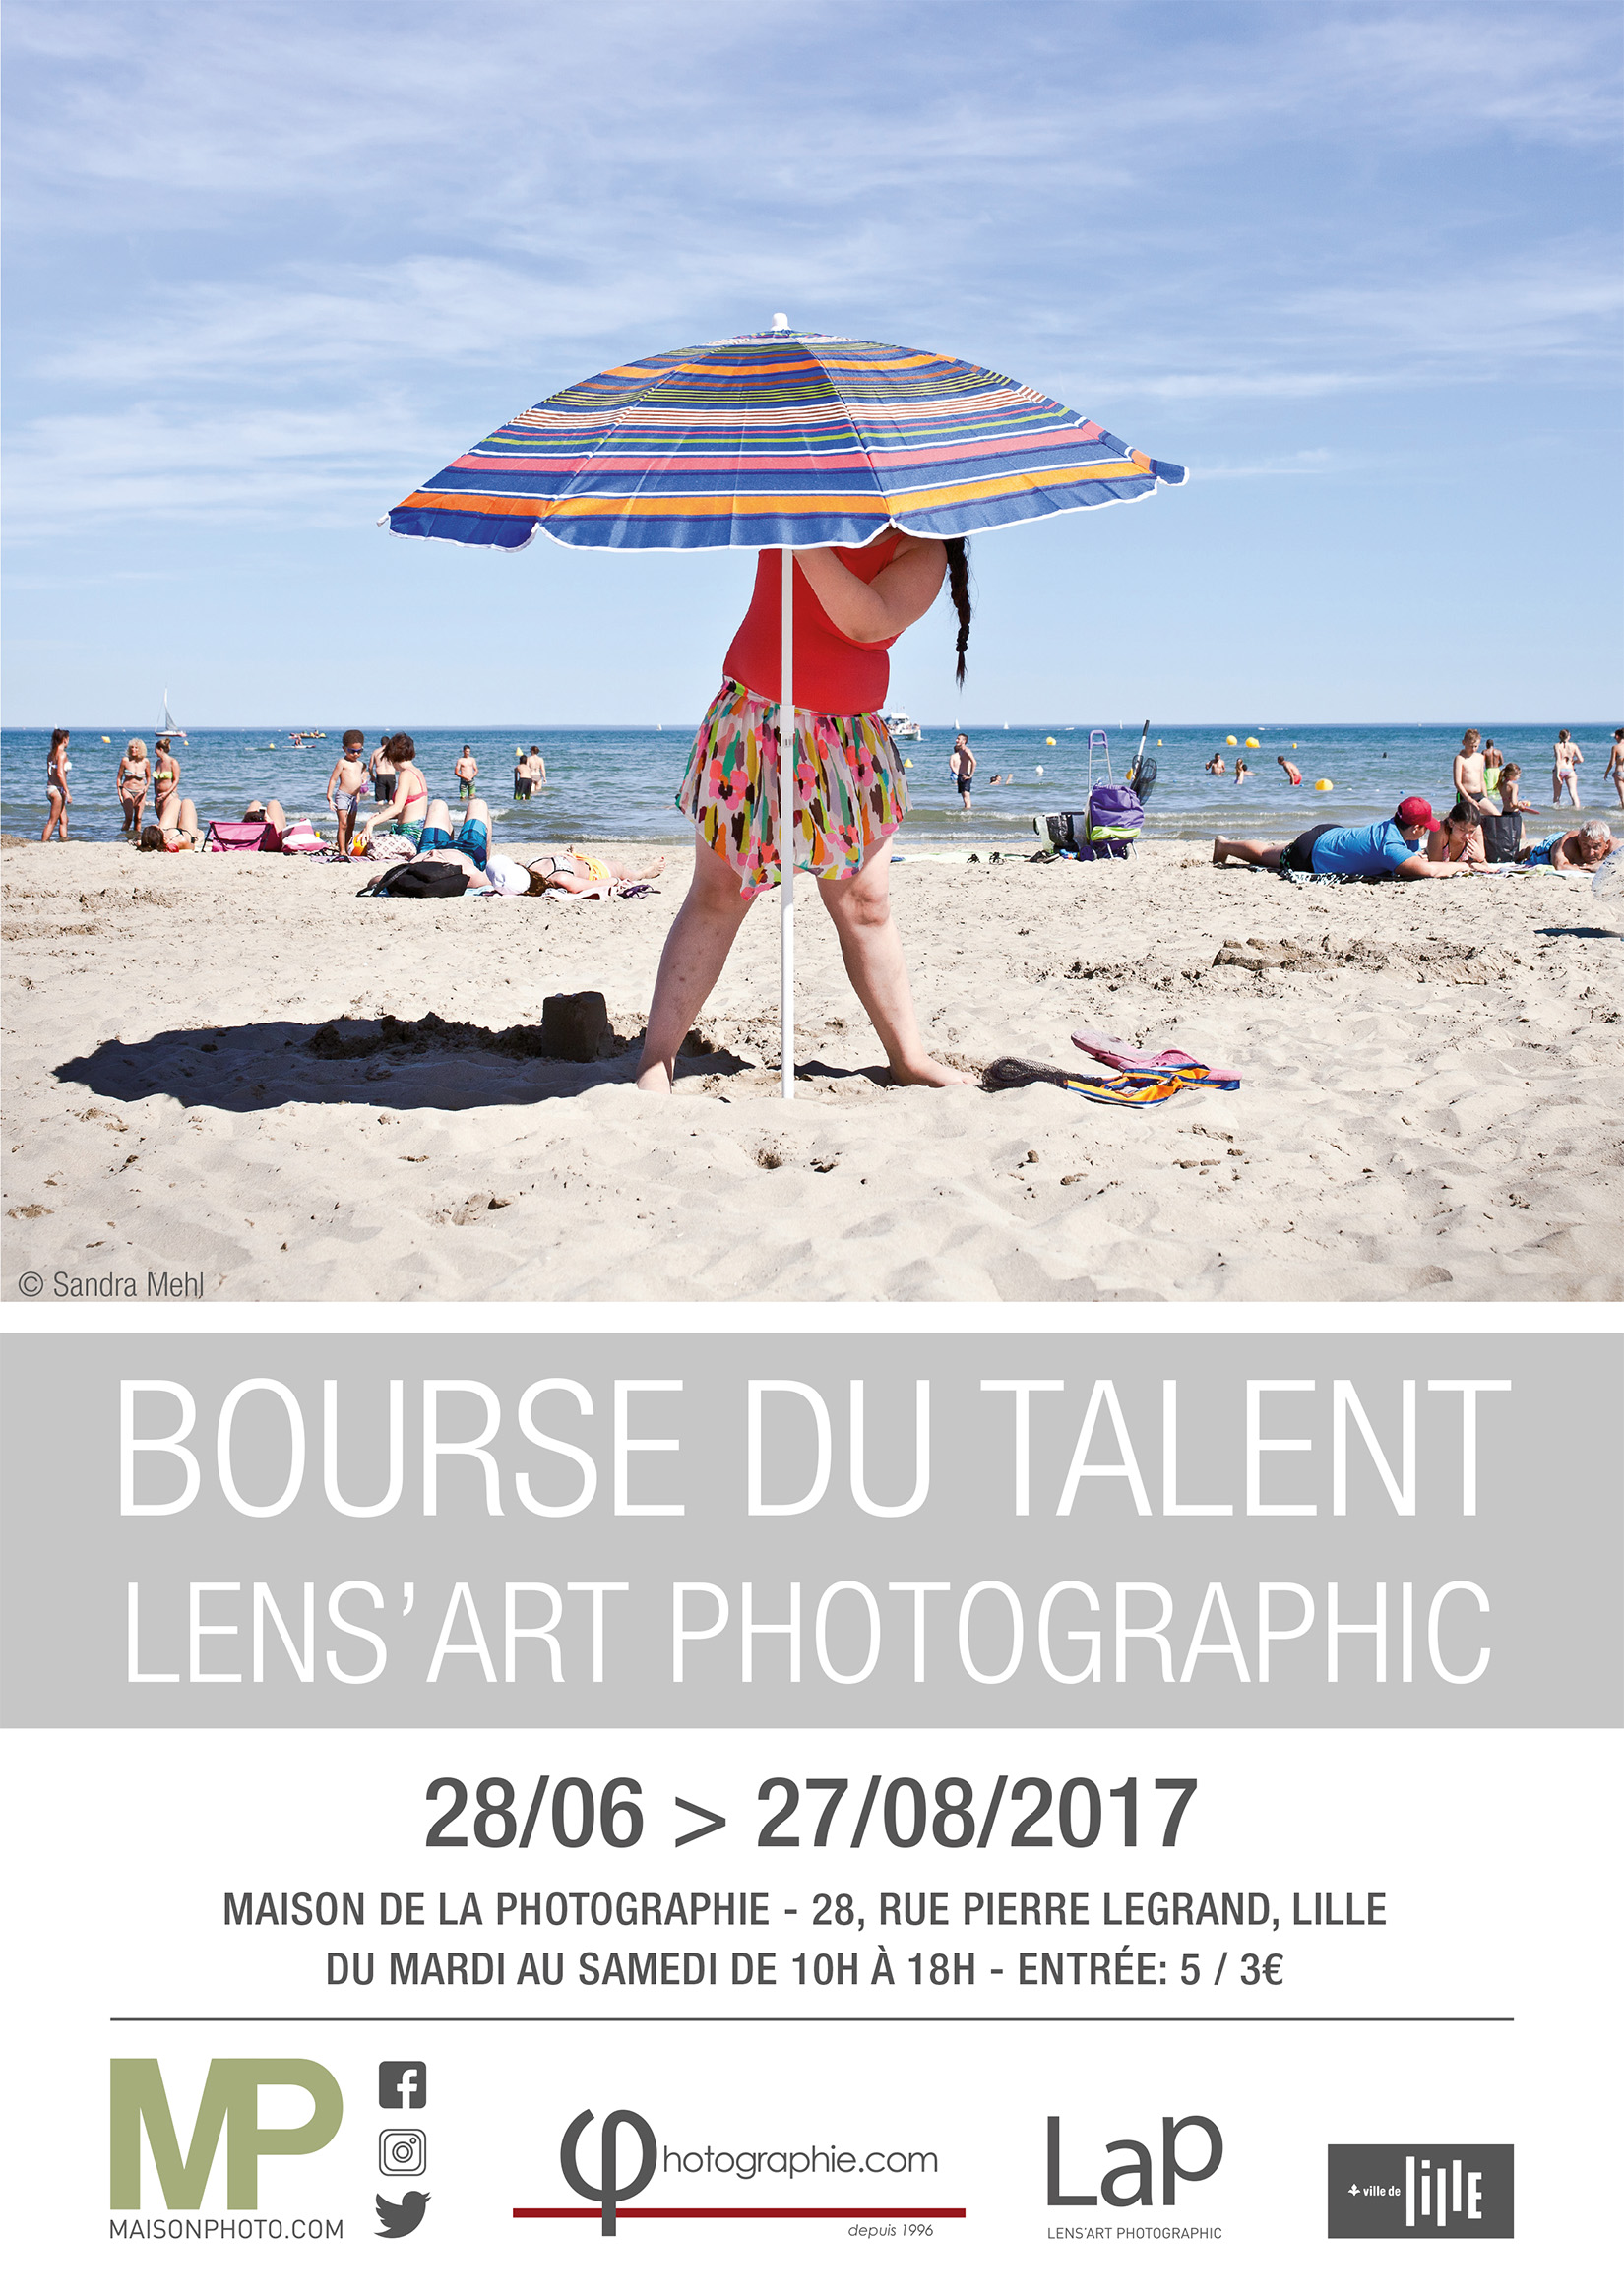 Bourse du talent – Lens'art photographic